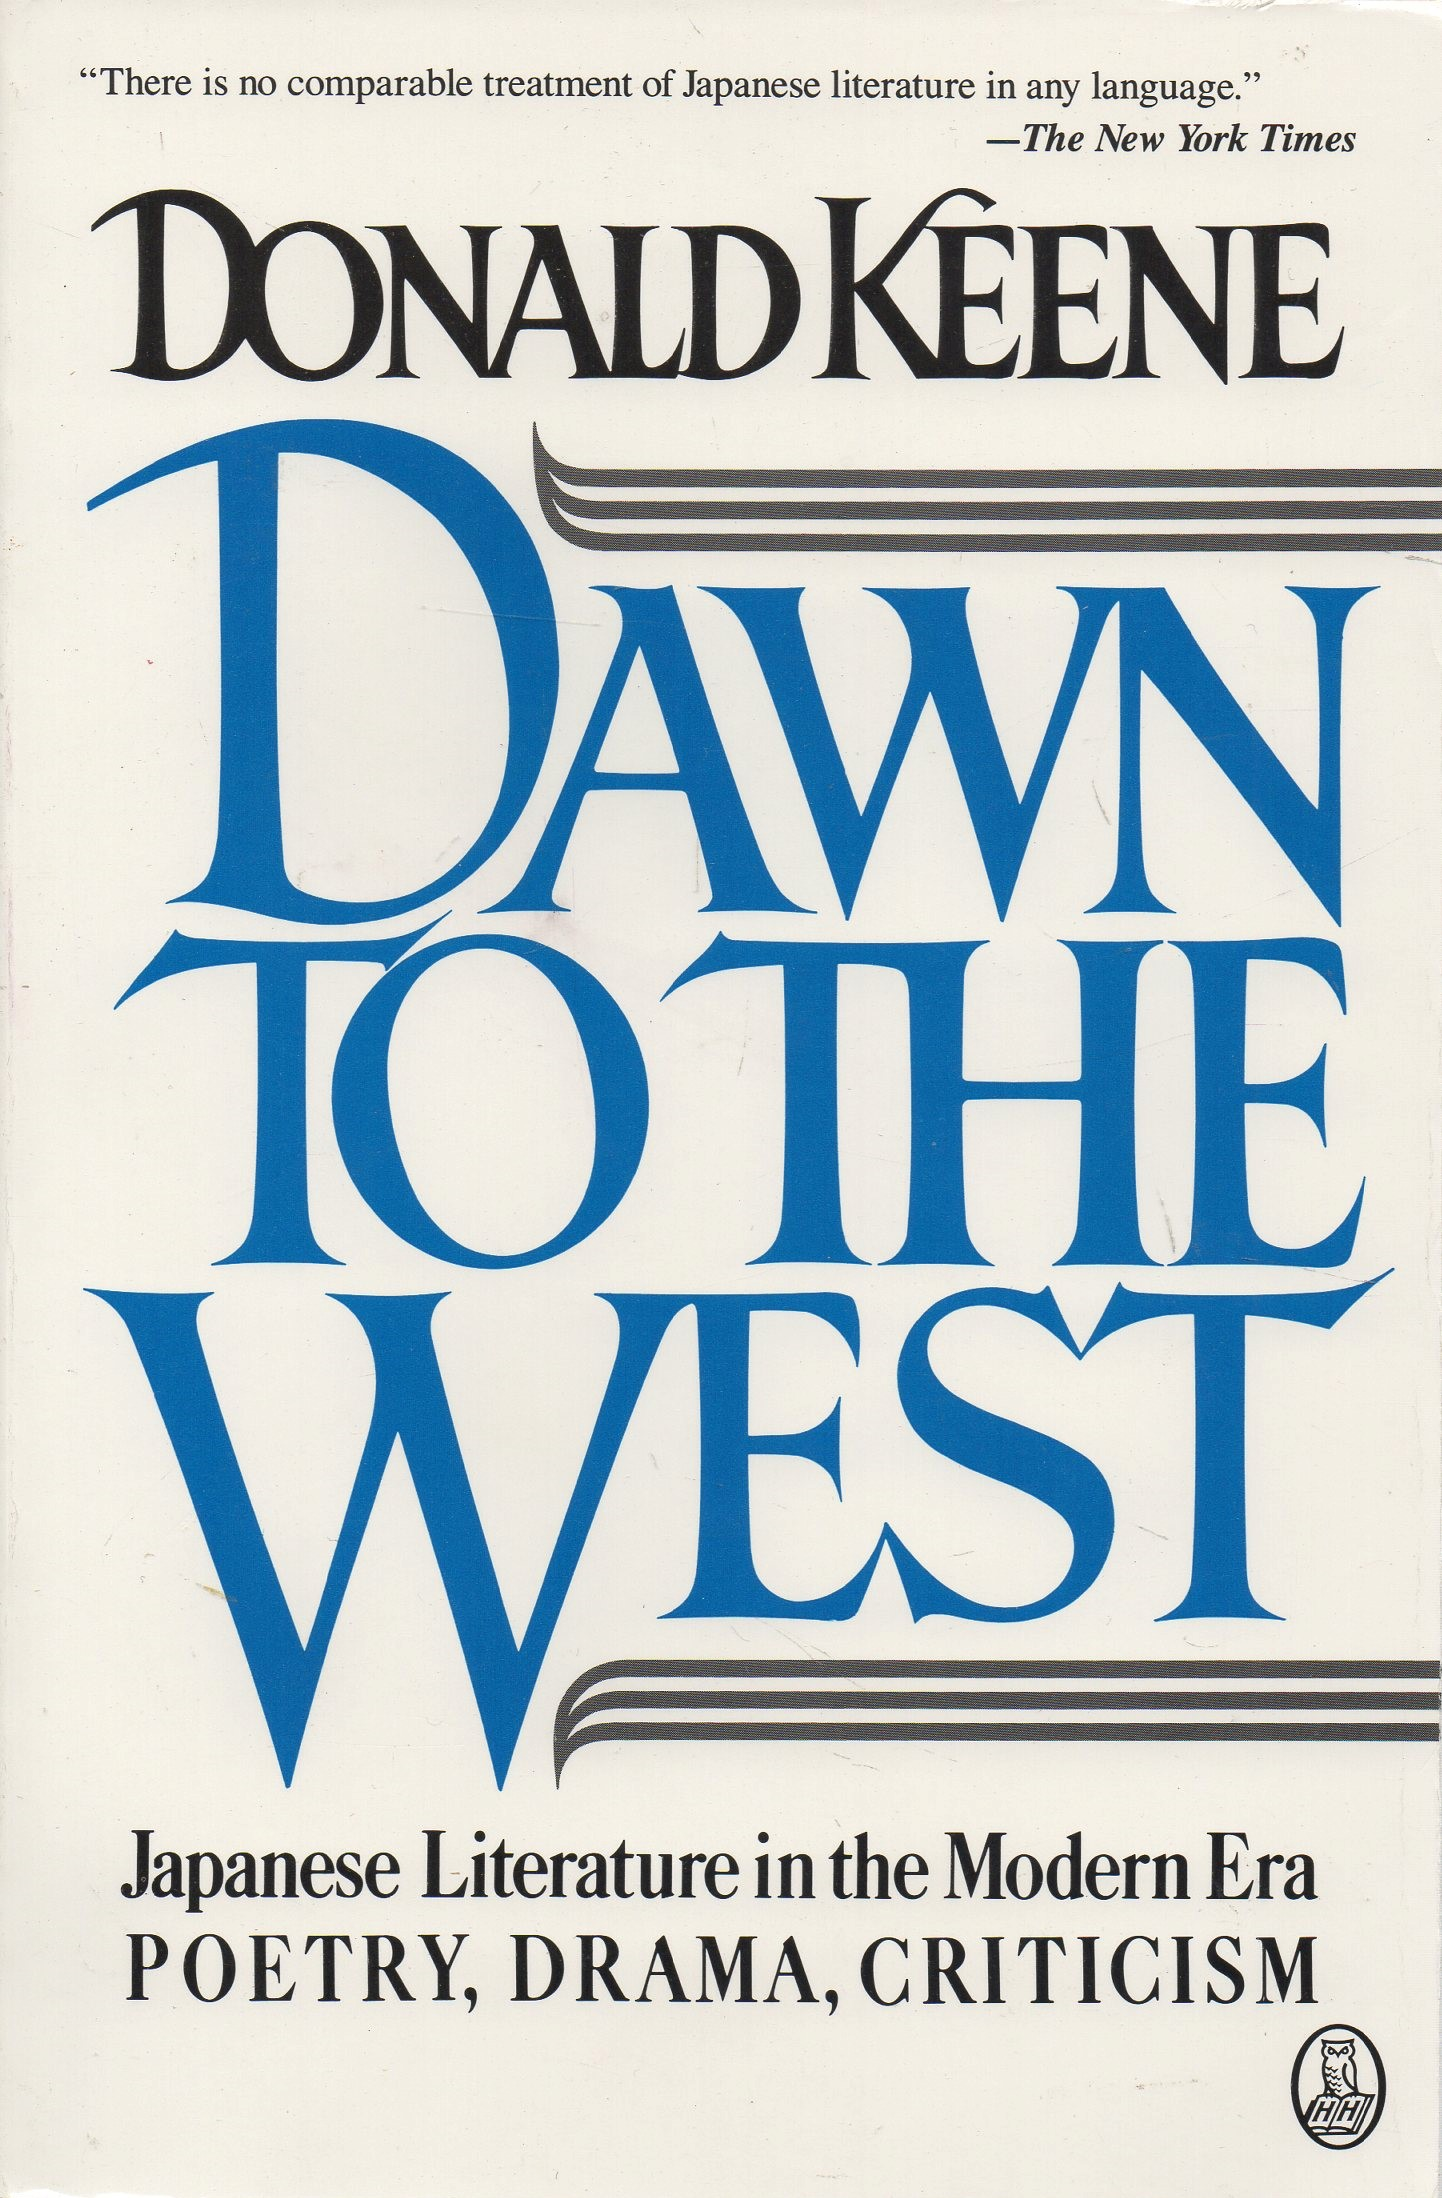 KEENE, DONALD - Dawn to the West - Japanese Literature in the Modern Era  Poetry, Drama, Criticism